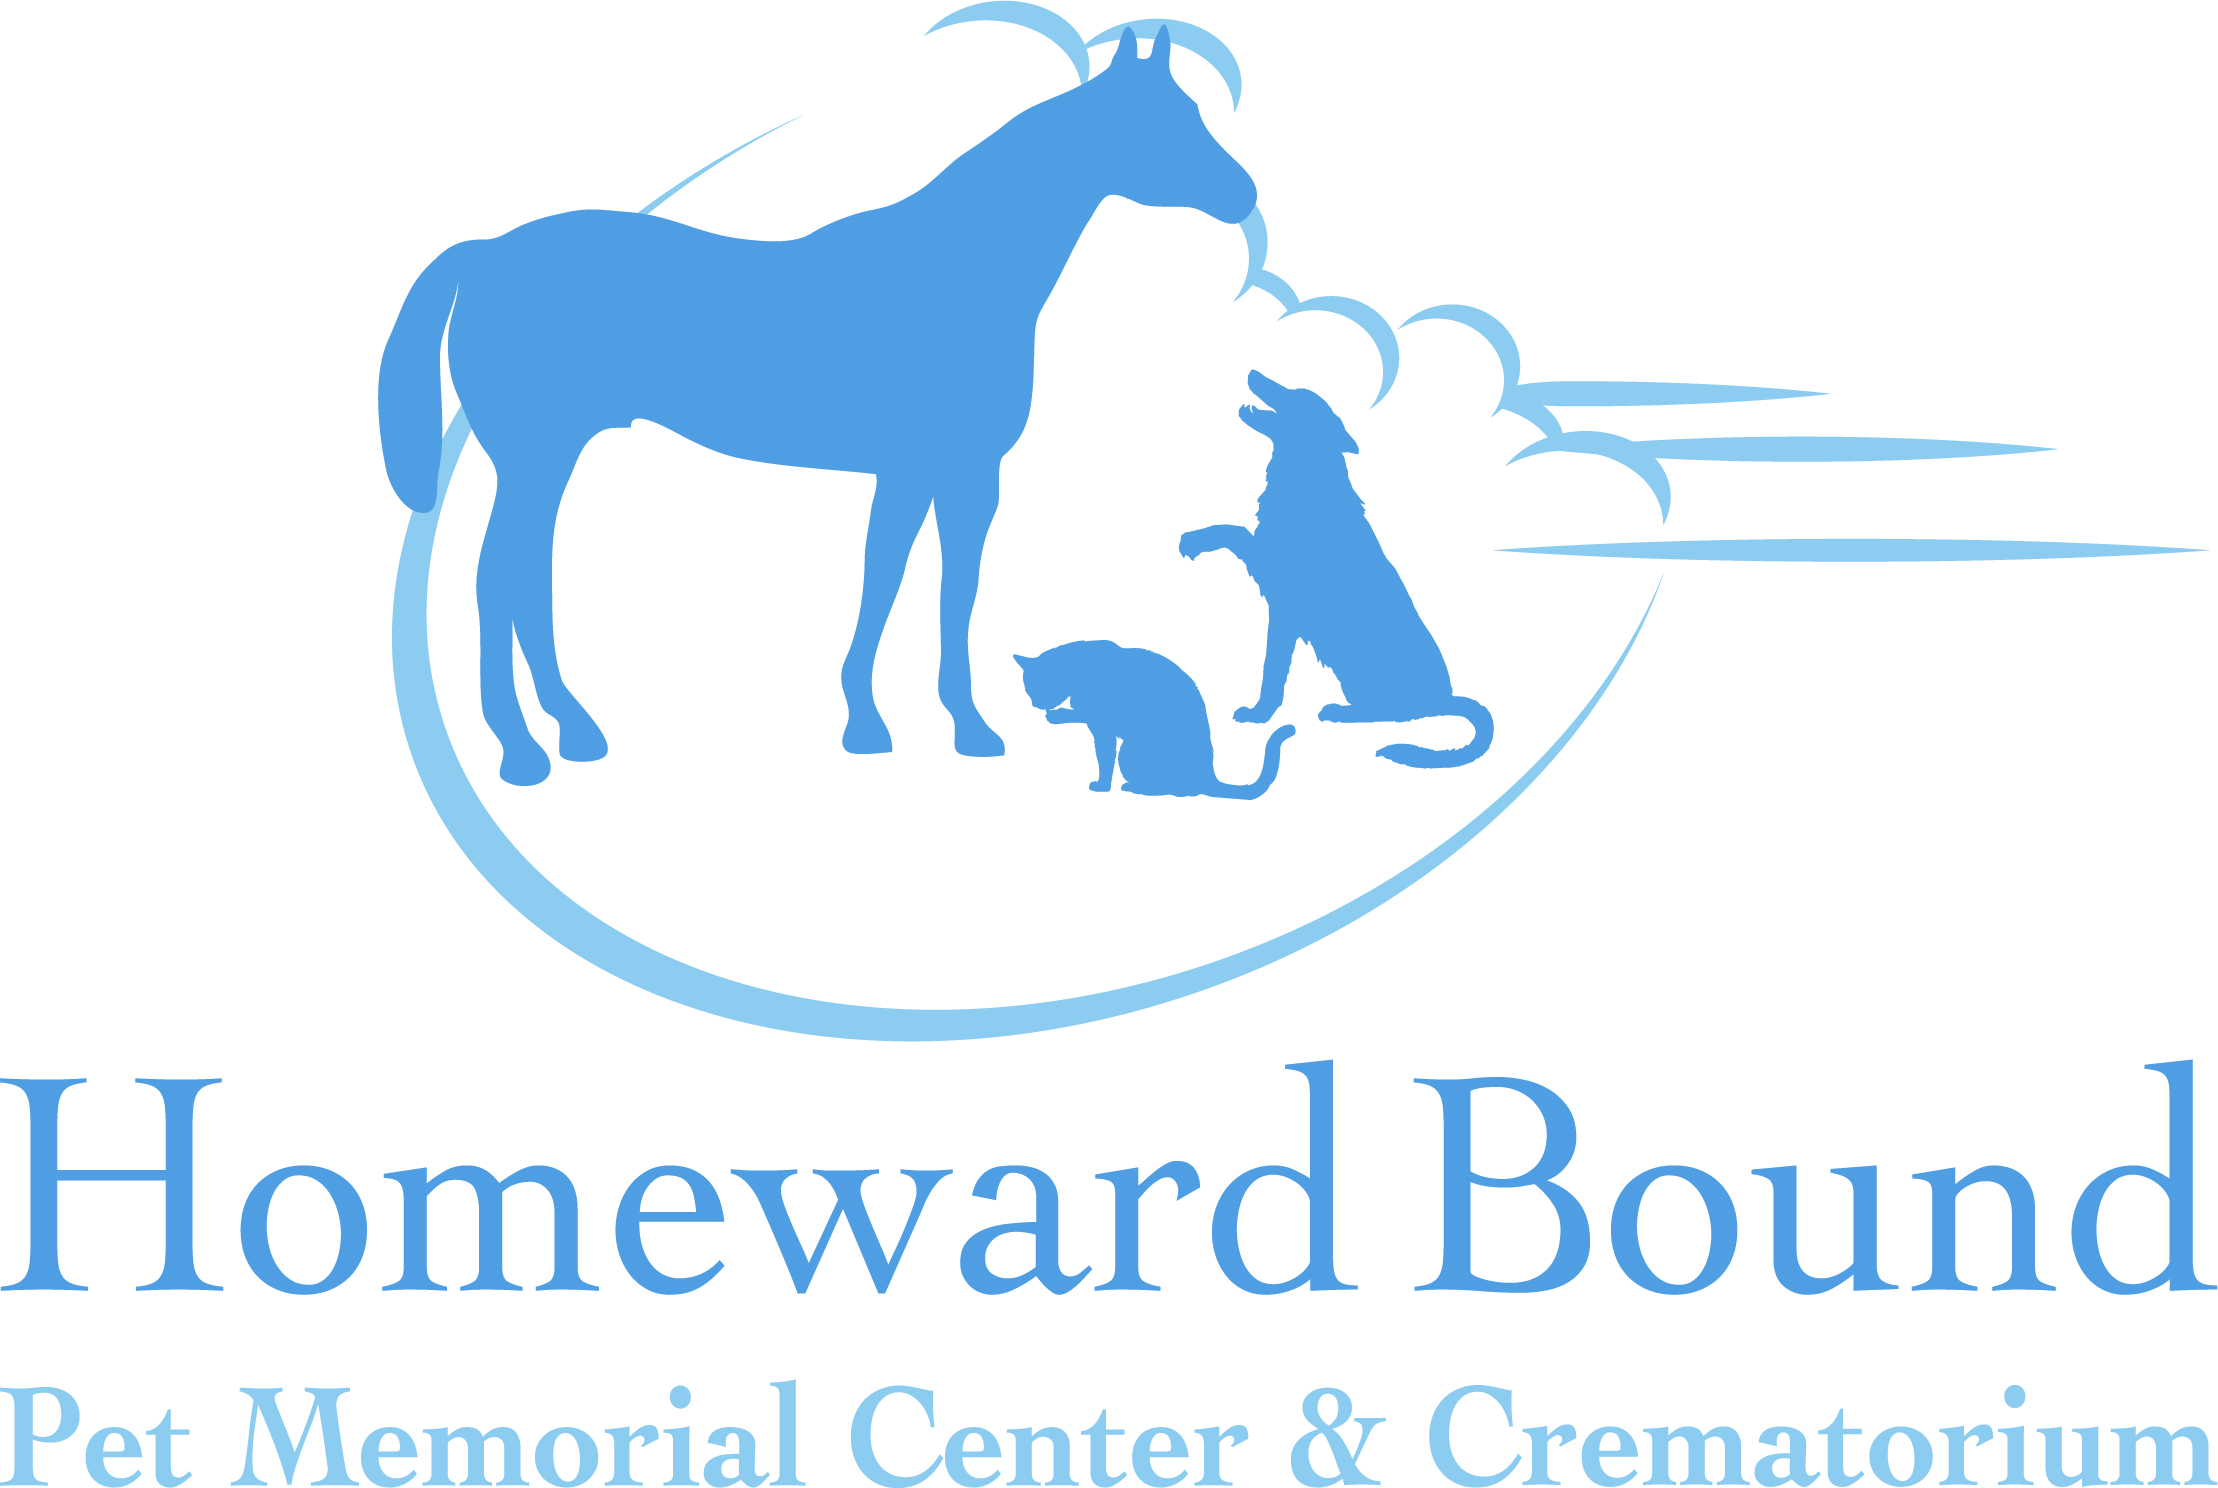 Homeward Bound Pet Memorial Center & Crematorium